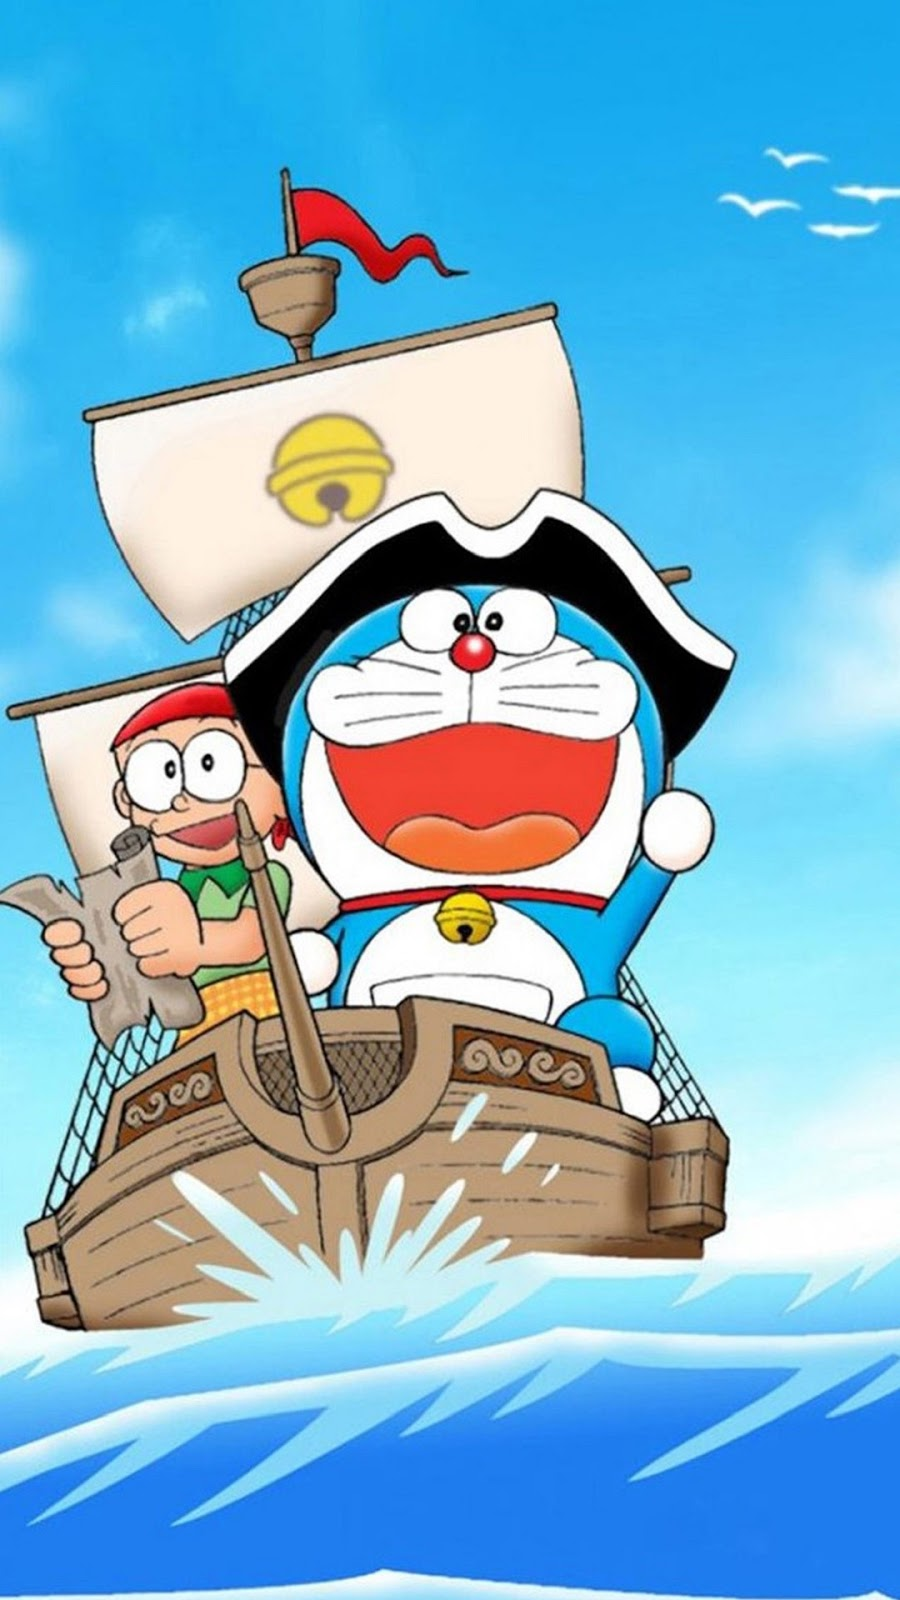 Cute and Funny Cartoon Wallpapers of Shin-chan, Nobita, Doraemon,Frozen, Angry birds